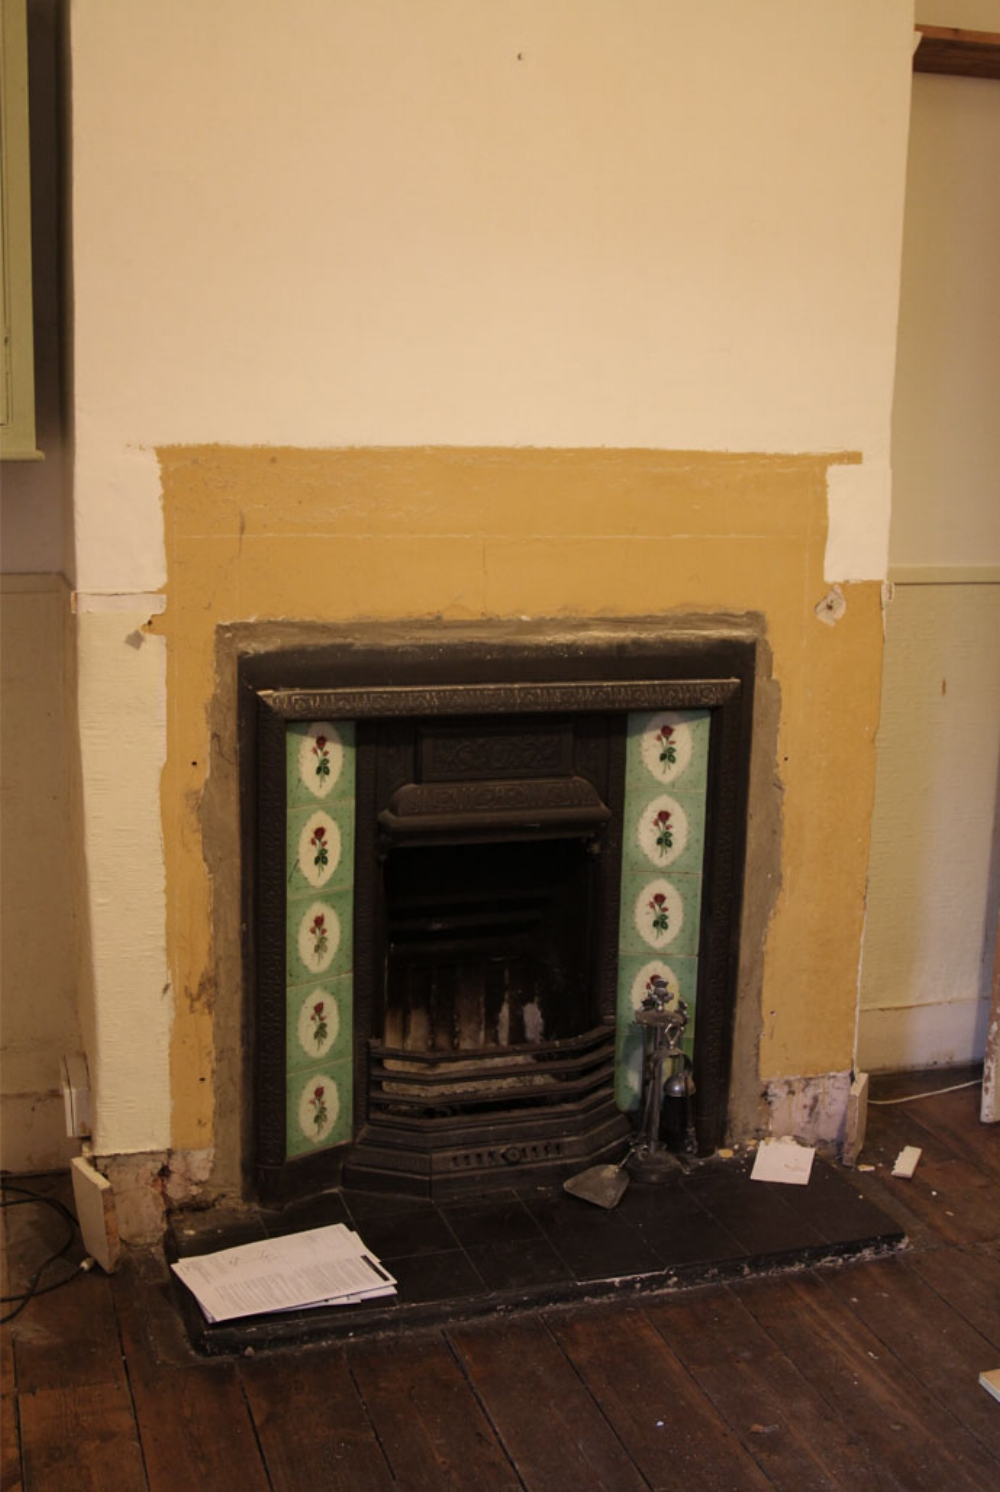 43-Kitsbury-20Nov-Fireplace.jpg